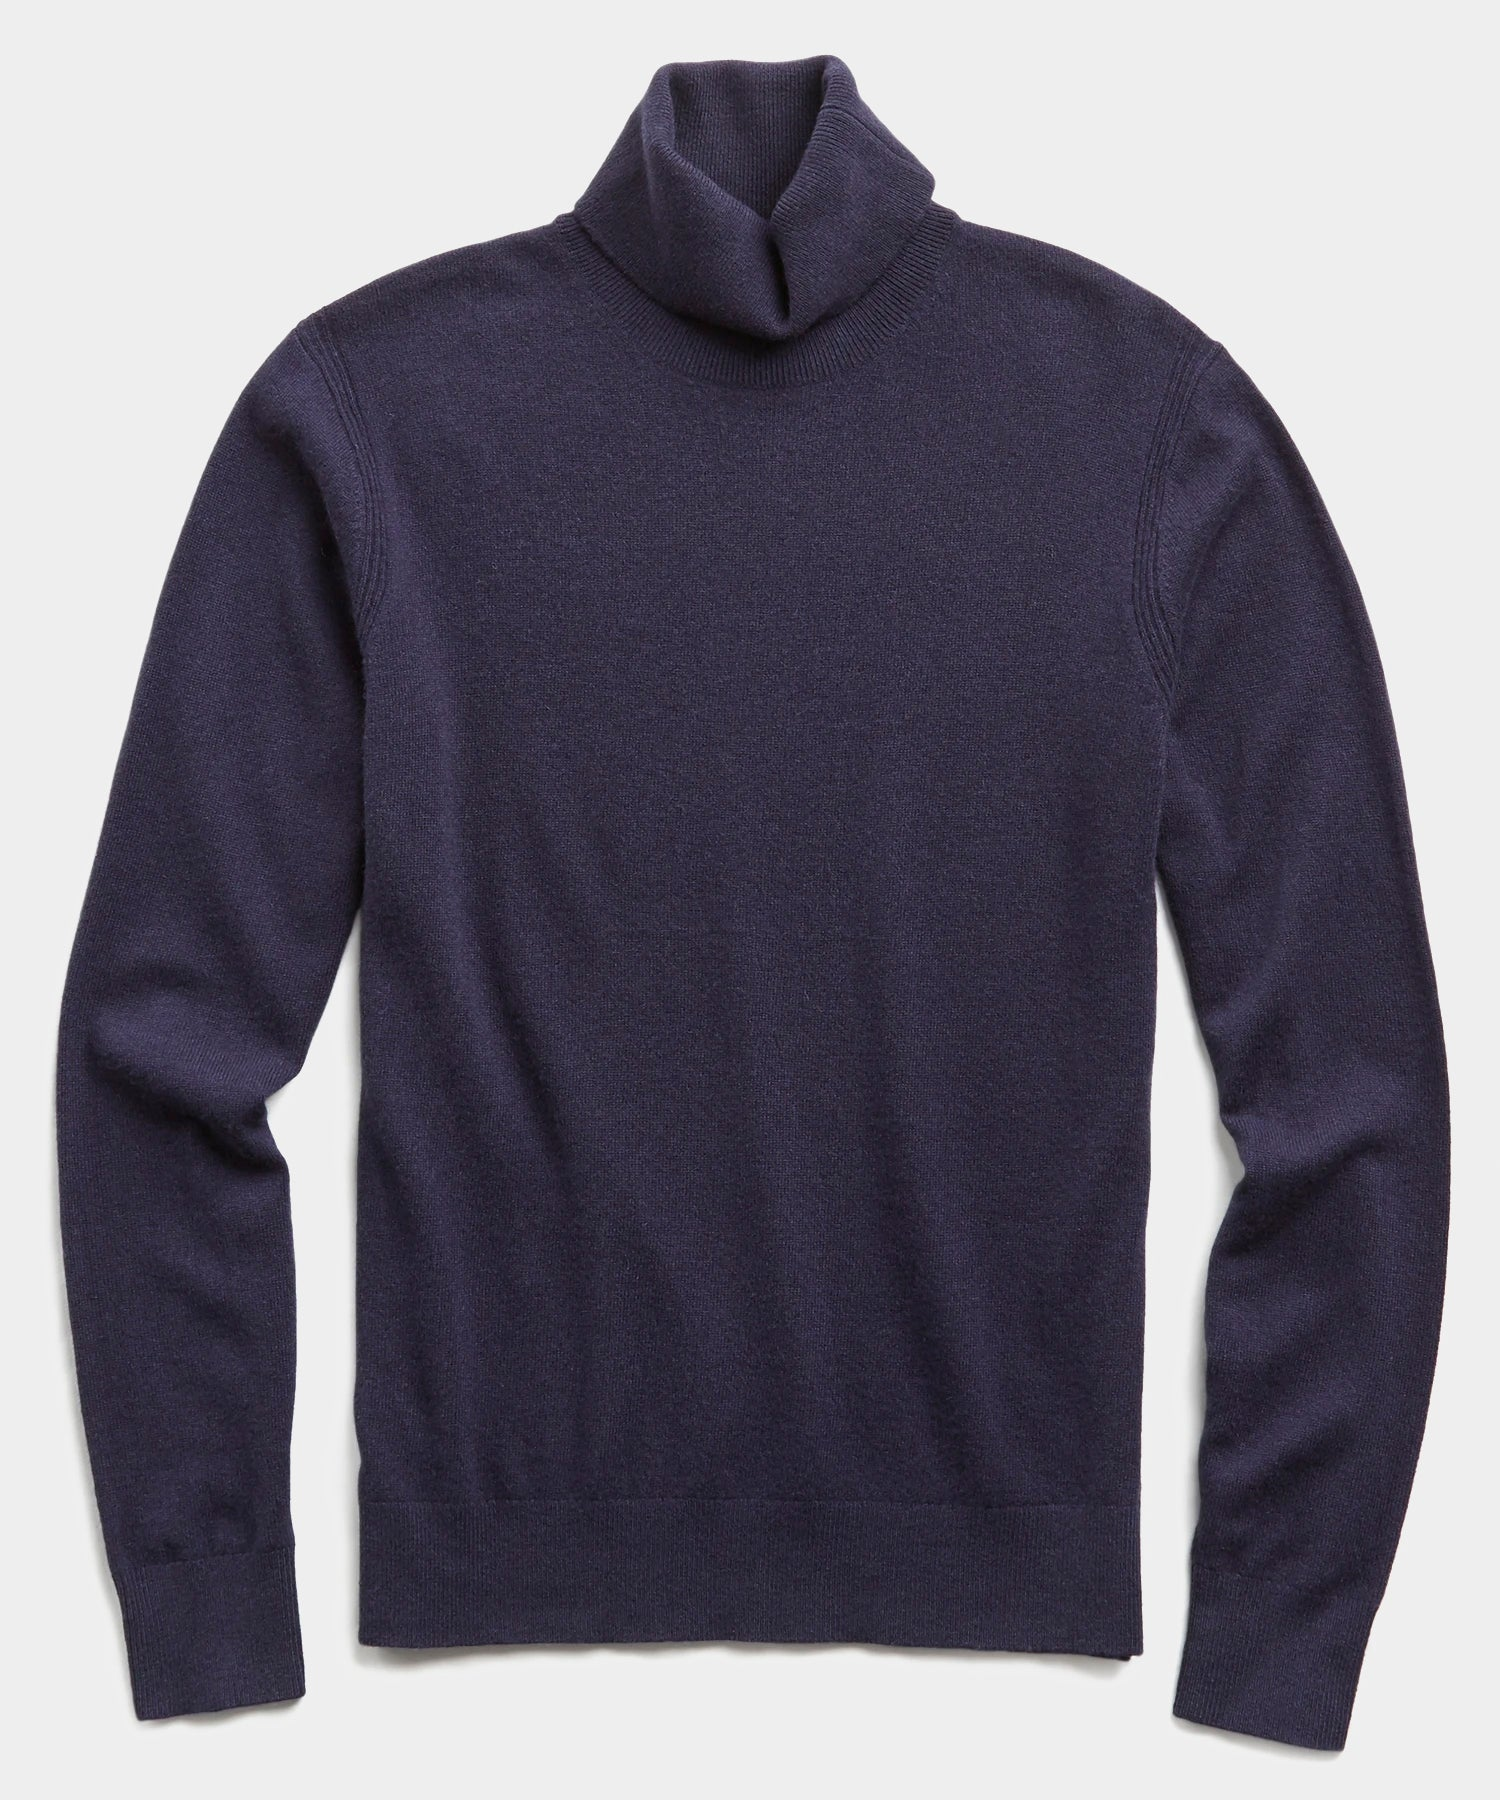 Cashmere Turtleneck in Navy